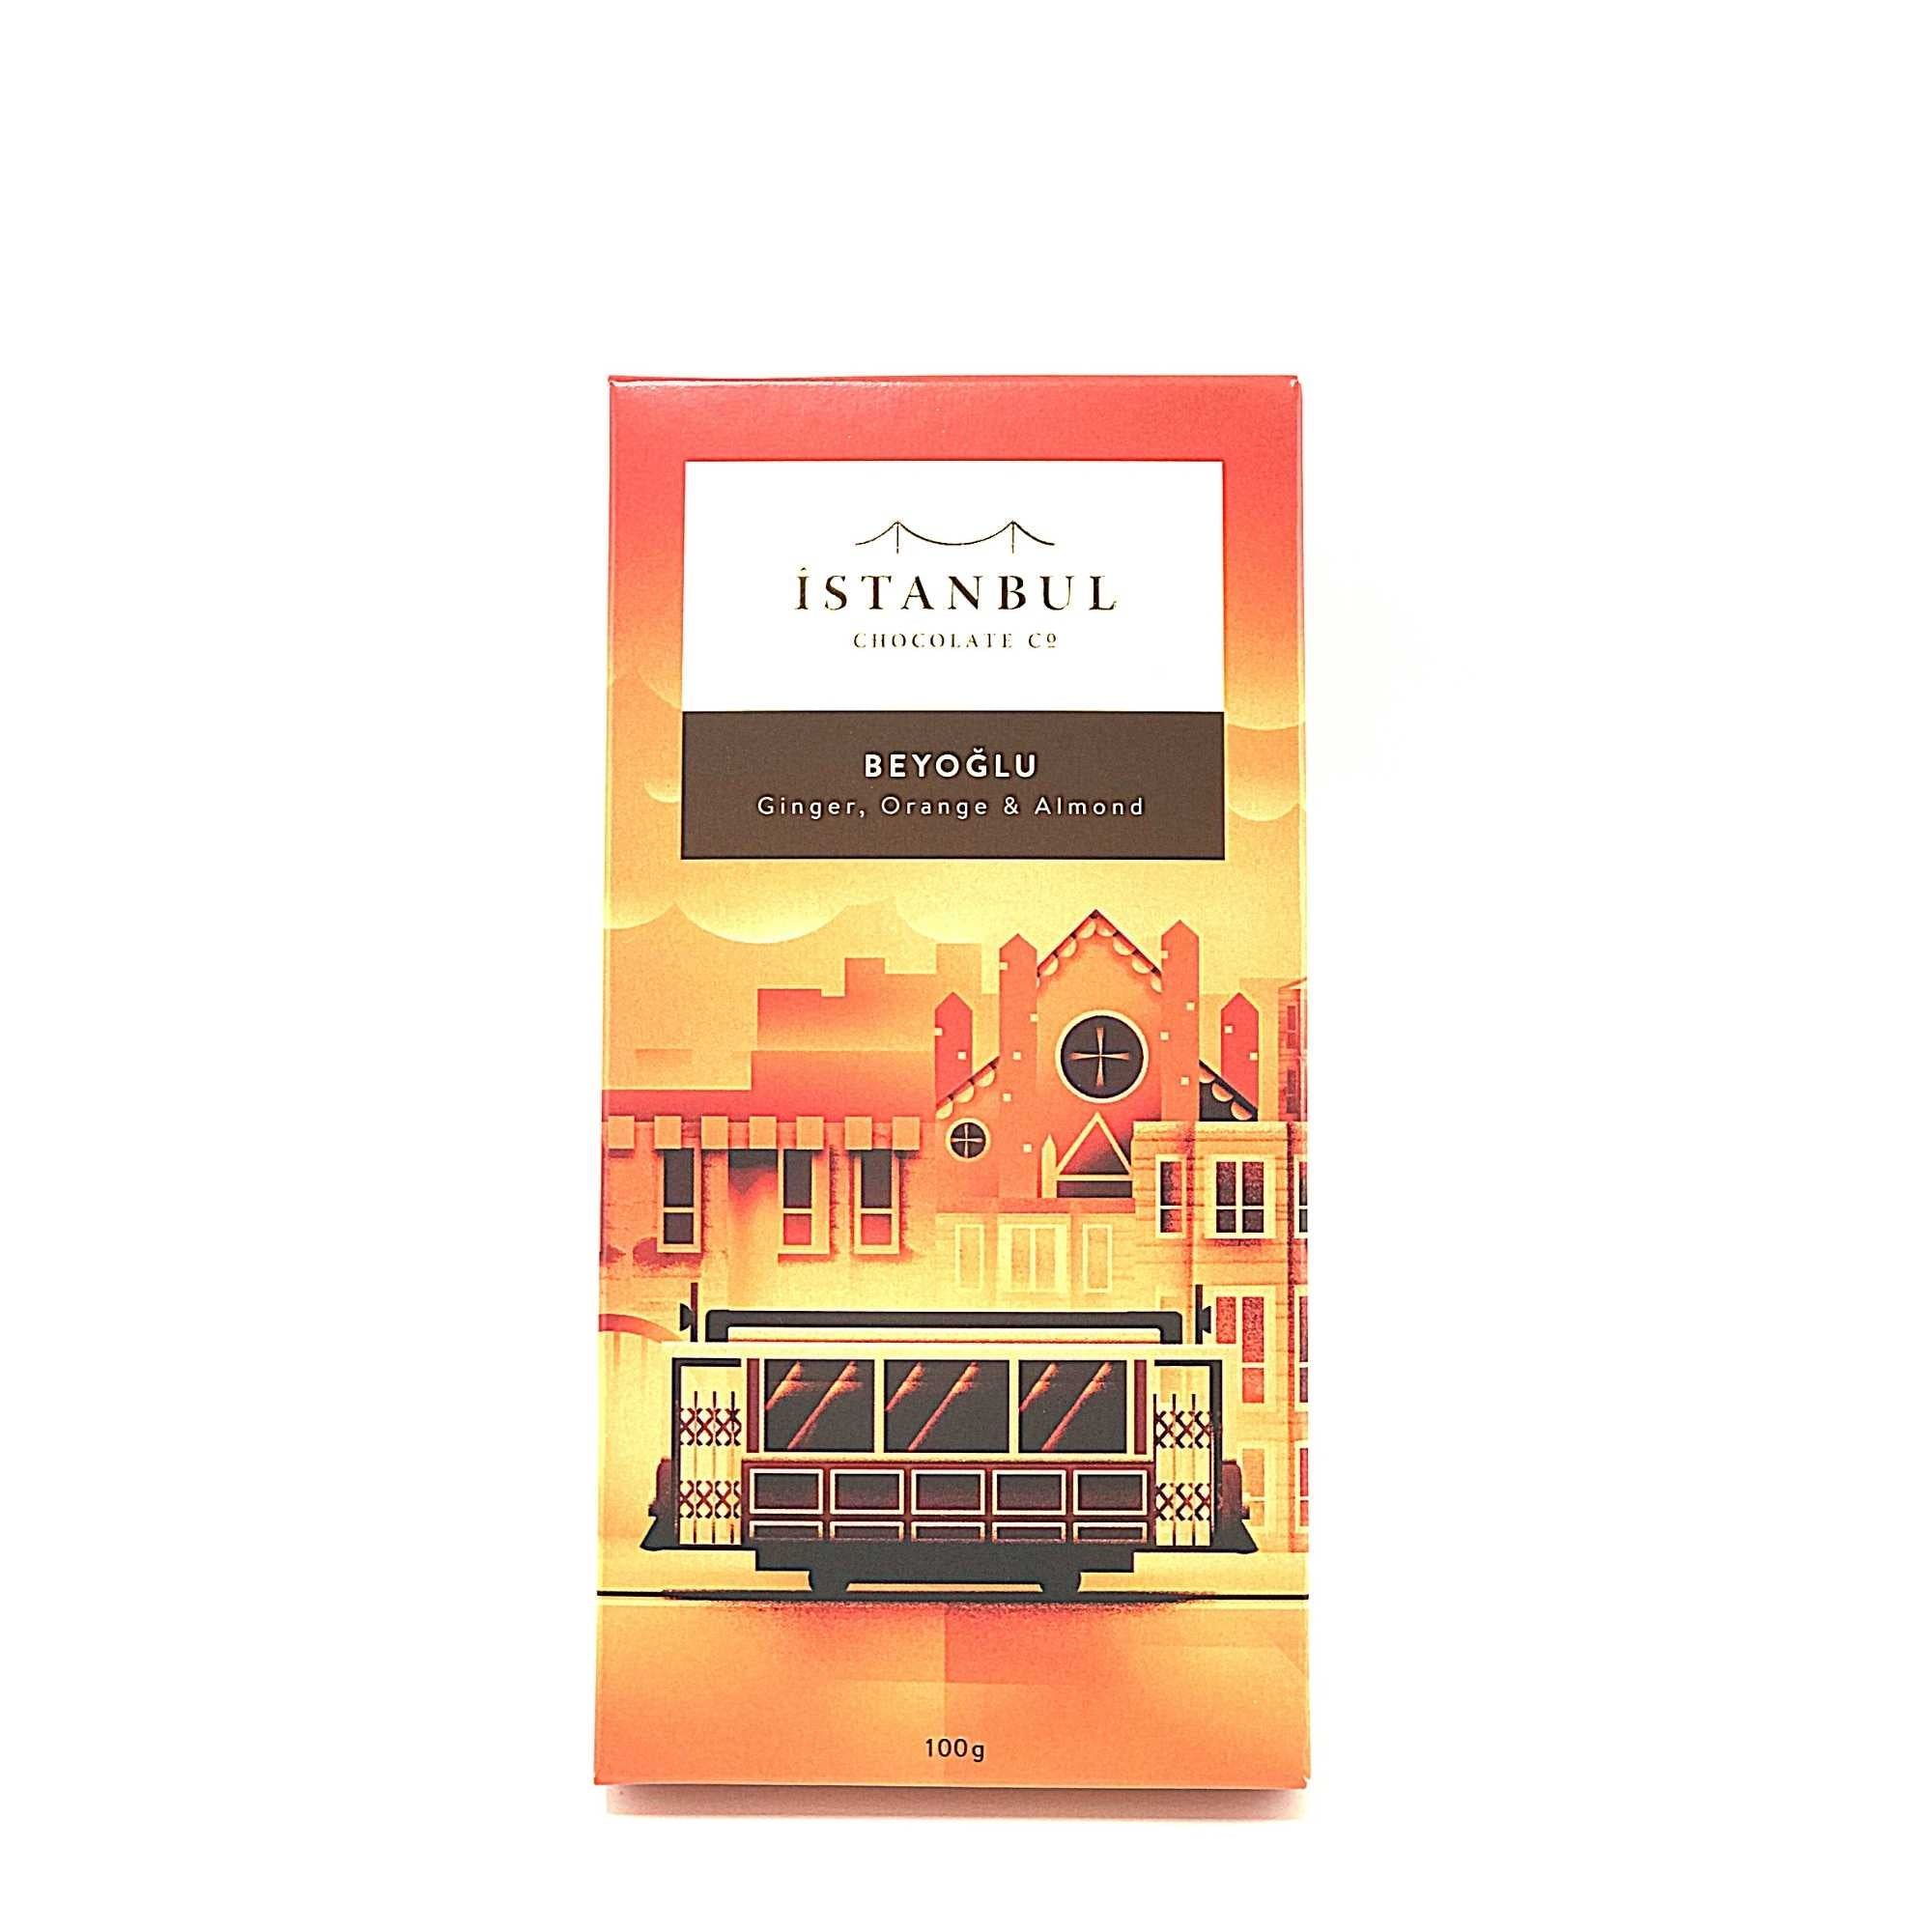 Istanbul Chocolate Beyoglu Ginger, Orange & Almond 100 Gr